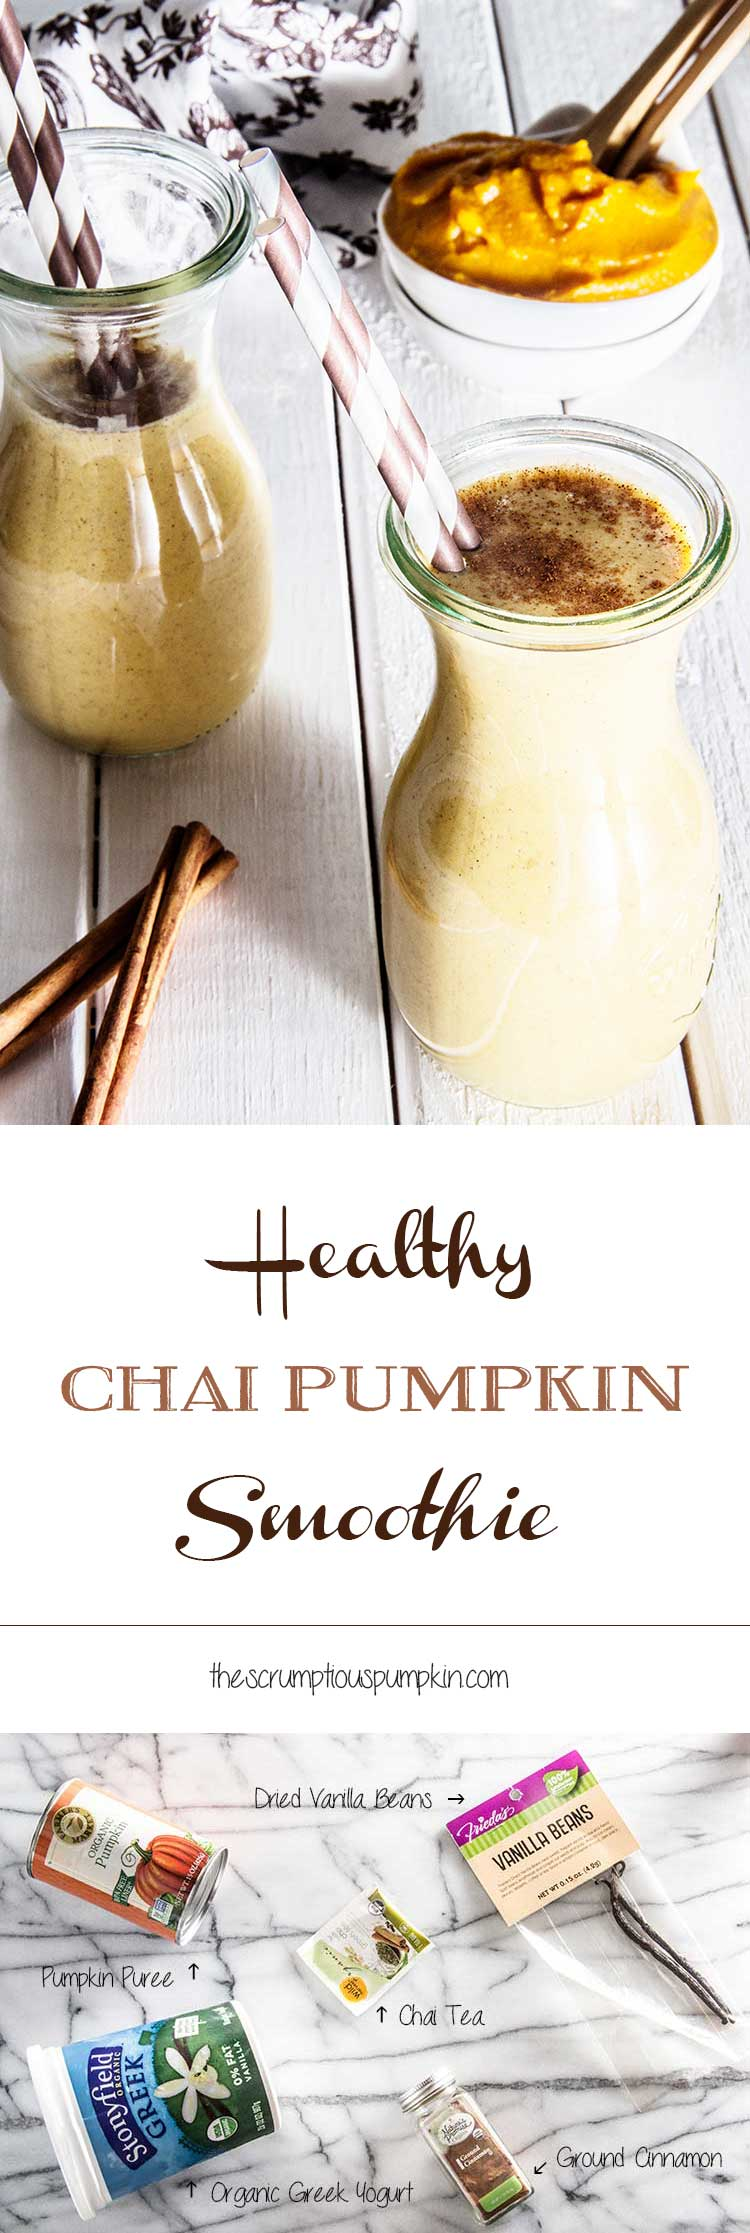 chai-pumpkin-smoothie-easy-to-make-with-five-ingredients